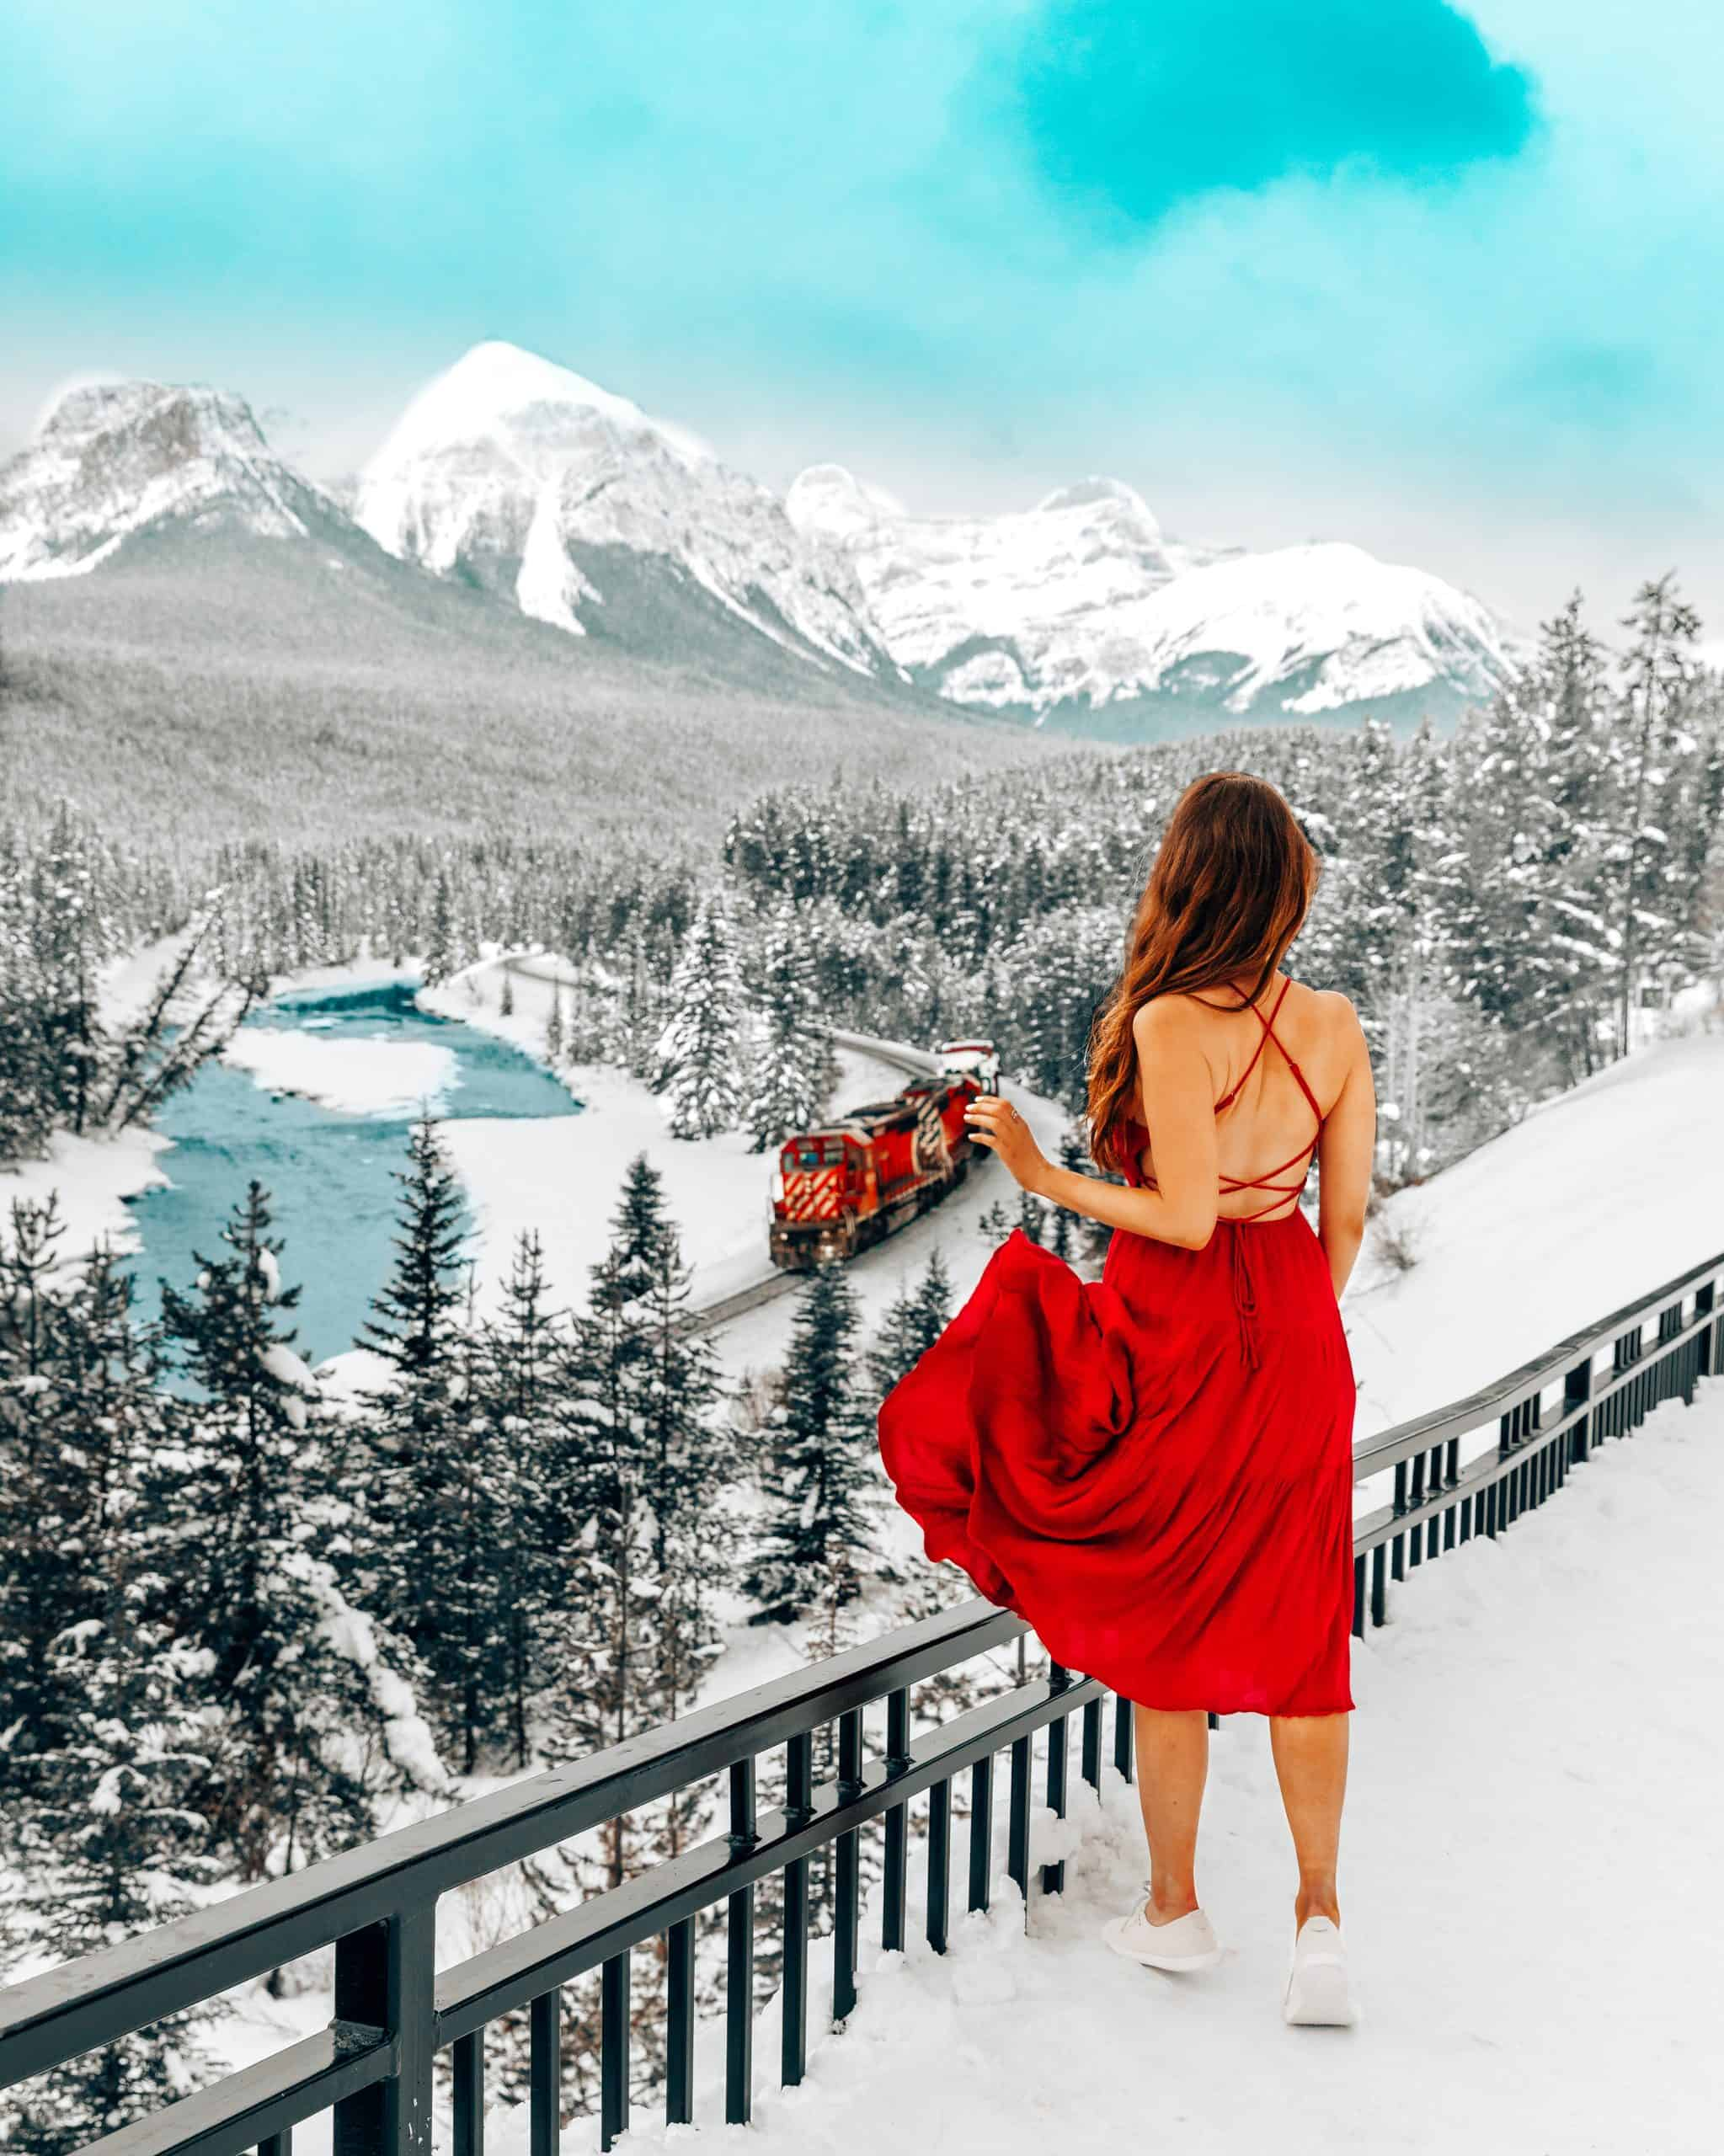 Girl in Red Dress at Morant's Curve in Banff - The Next Trip